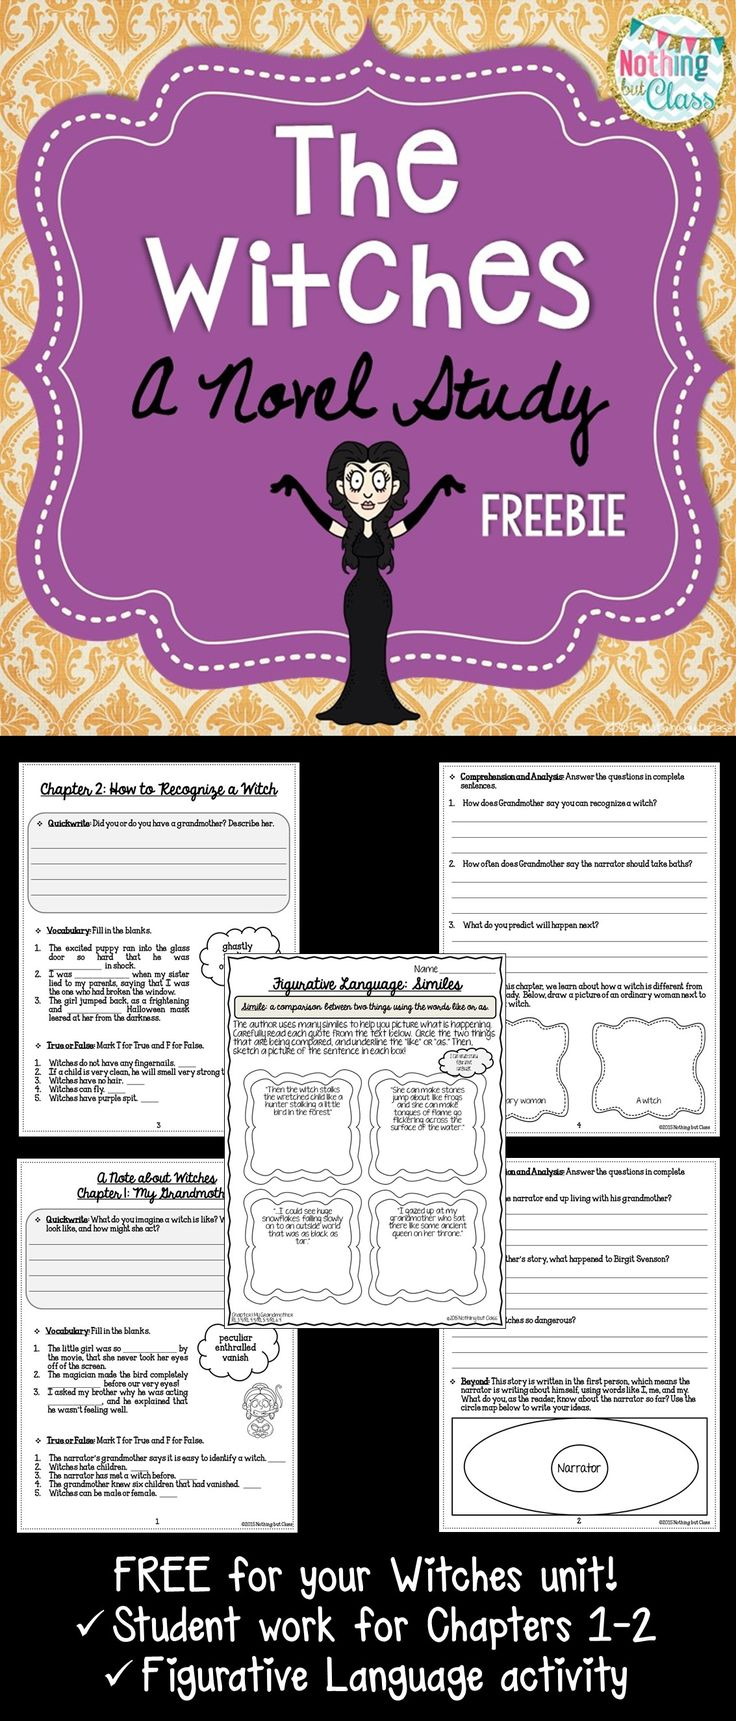 This is a 6 page FREE sample of my novel study for The Witches by Roald Dahl. It is Common Core-aligned and student-friendly. Open-ended questions are adaptable for all students!